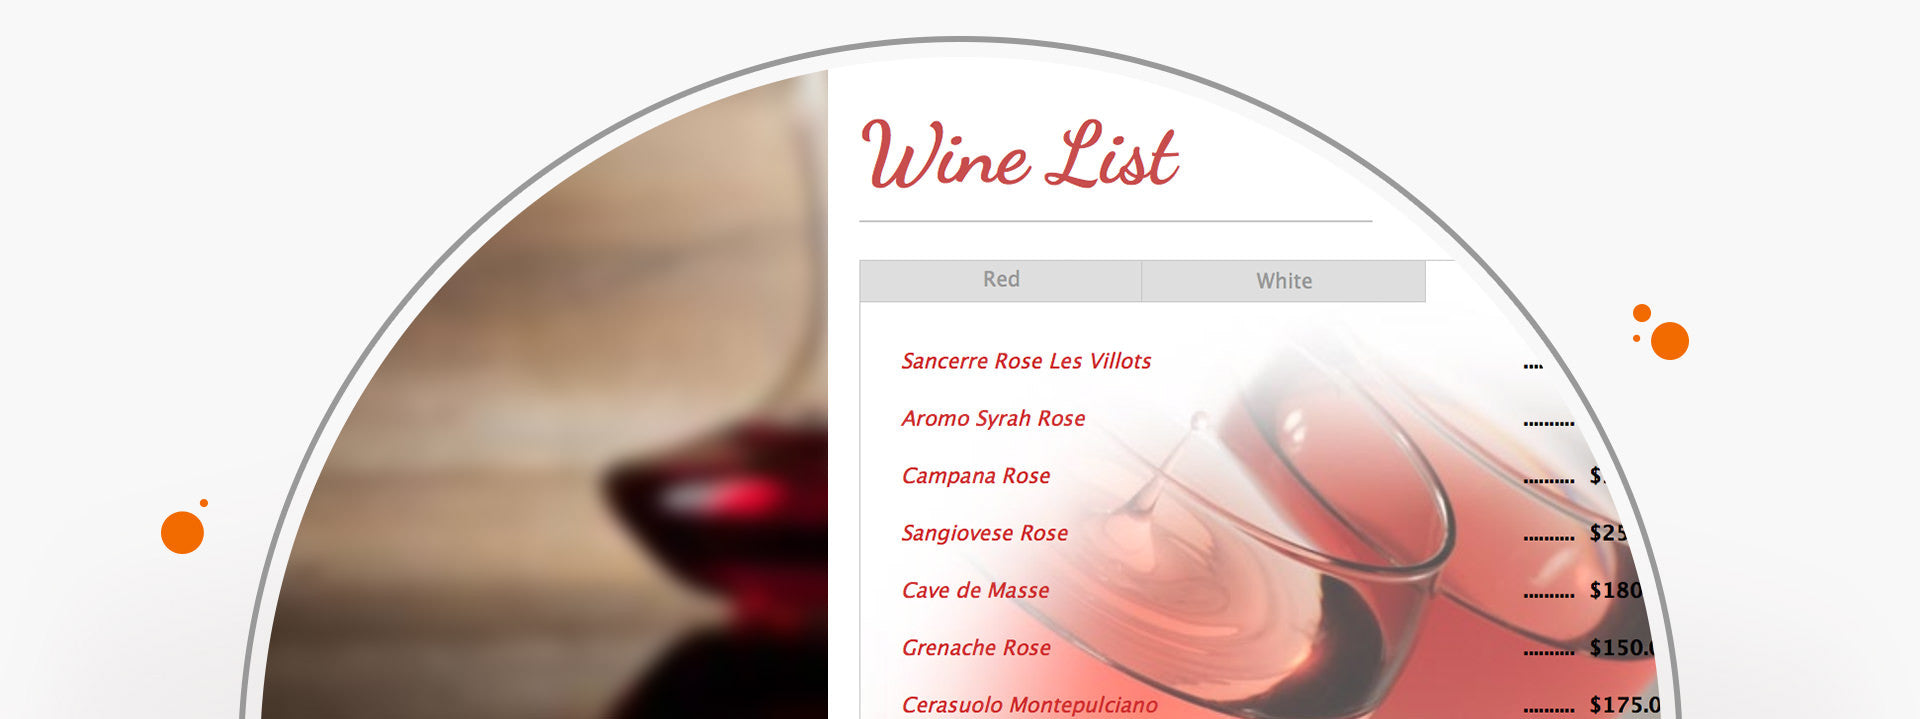 Tabs & Tooltips - Wine List